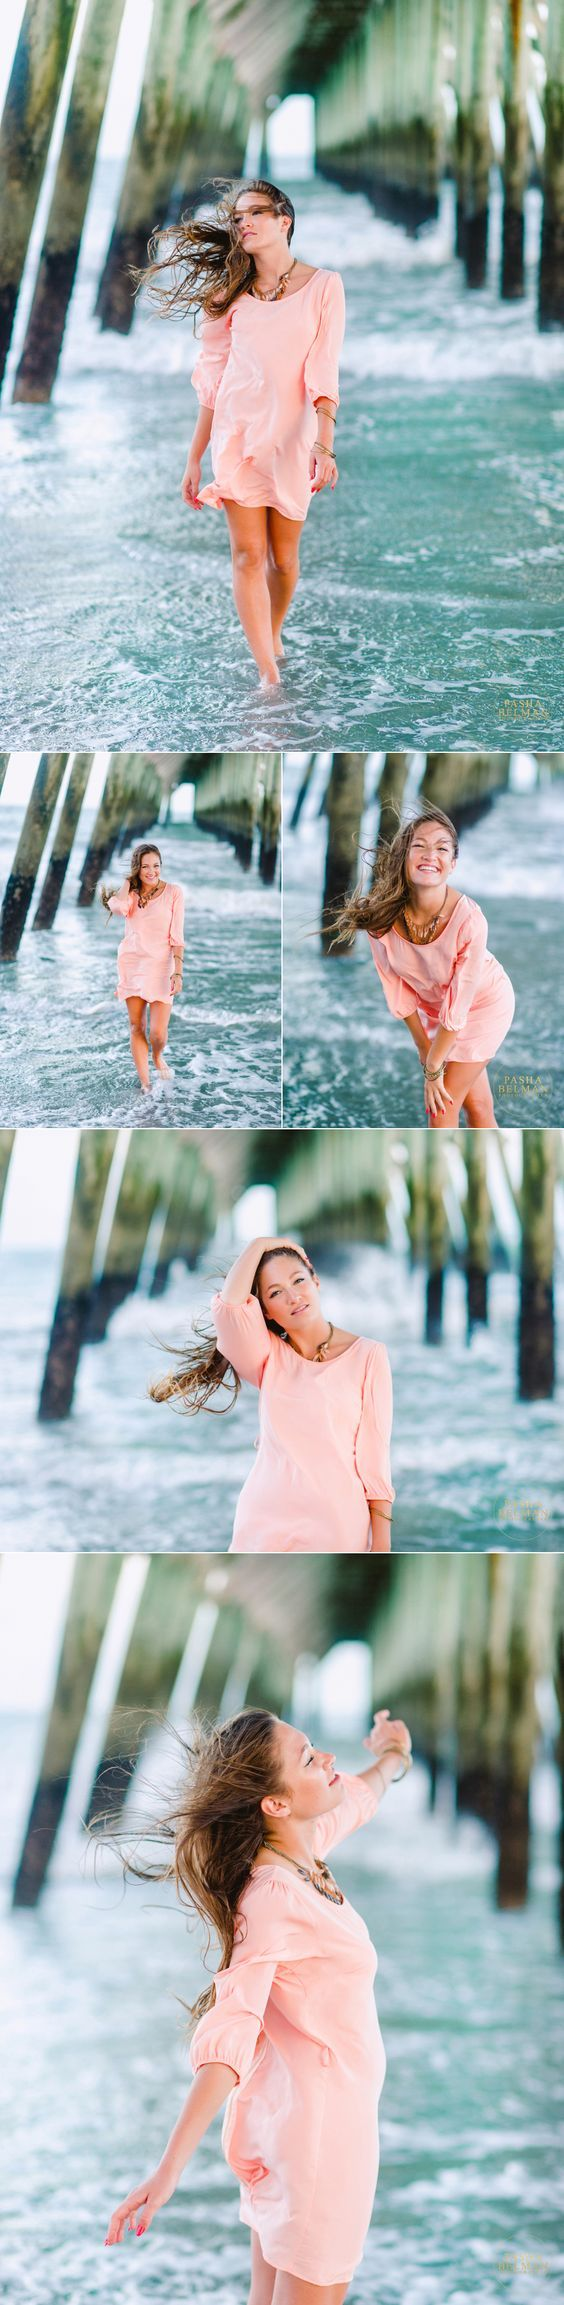 Senior pictures ideas for girls | Charleston senior pictures | myrtle beach high school senior photography | senior portraits in myrtle beach and Charleston | Myrtle Beach Senior Pictures - www.pashabelman.com